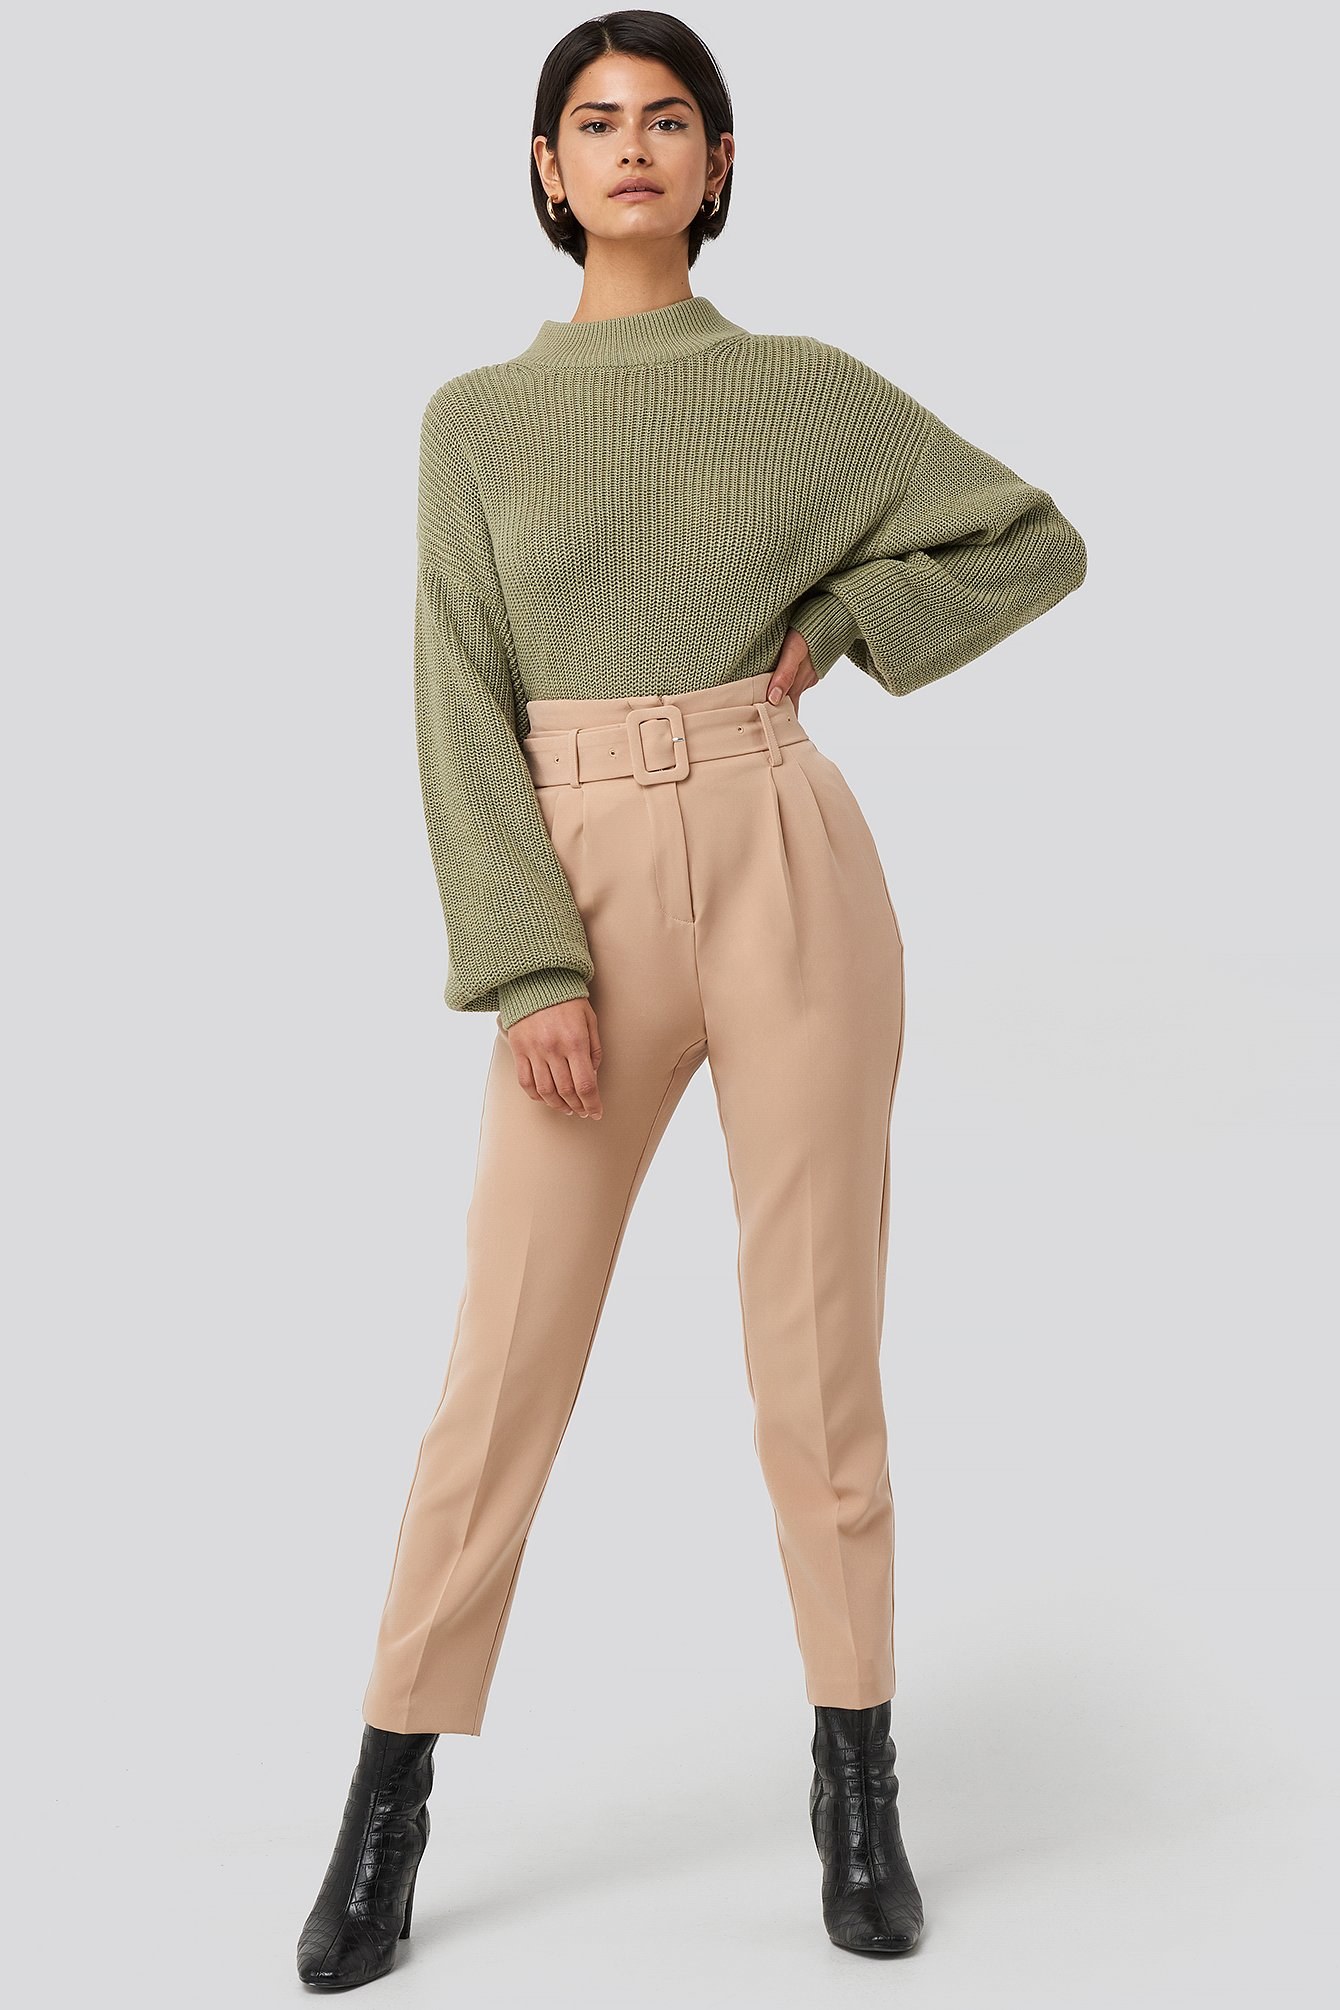 Belted Suit Pants Beige by Nakdclassic